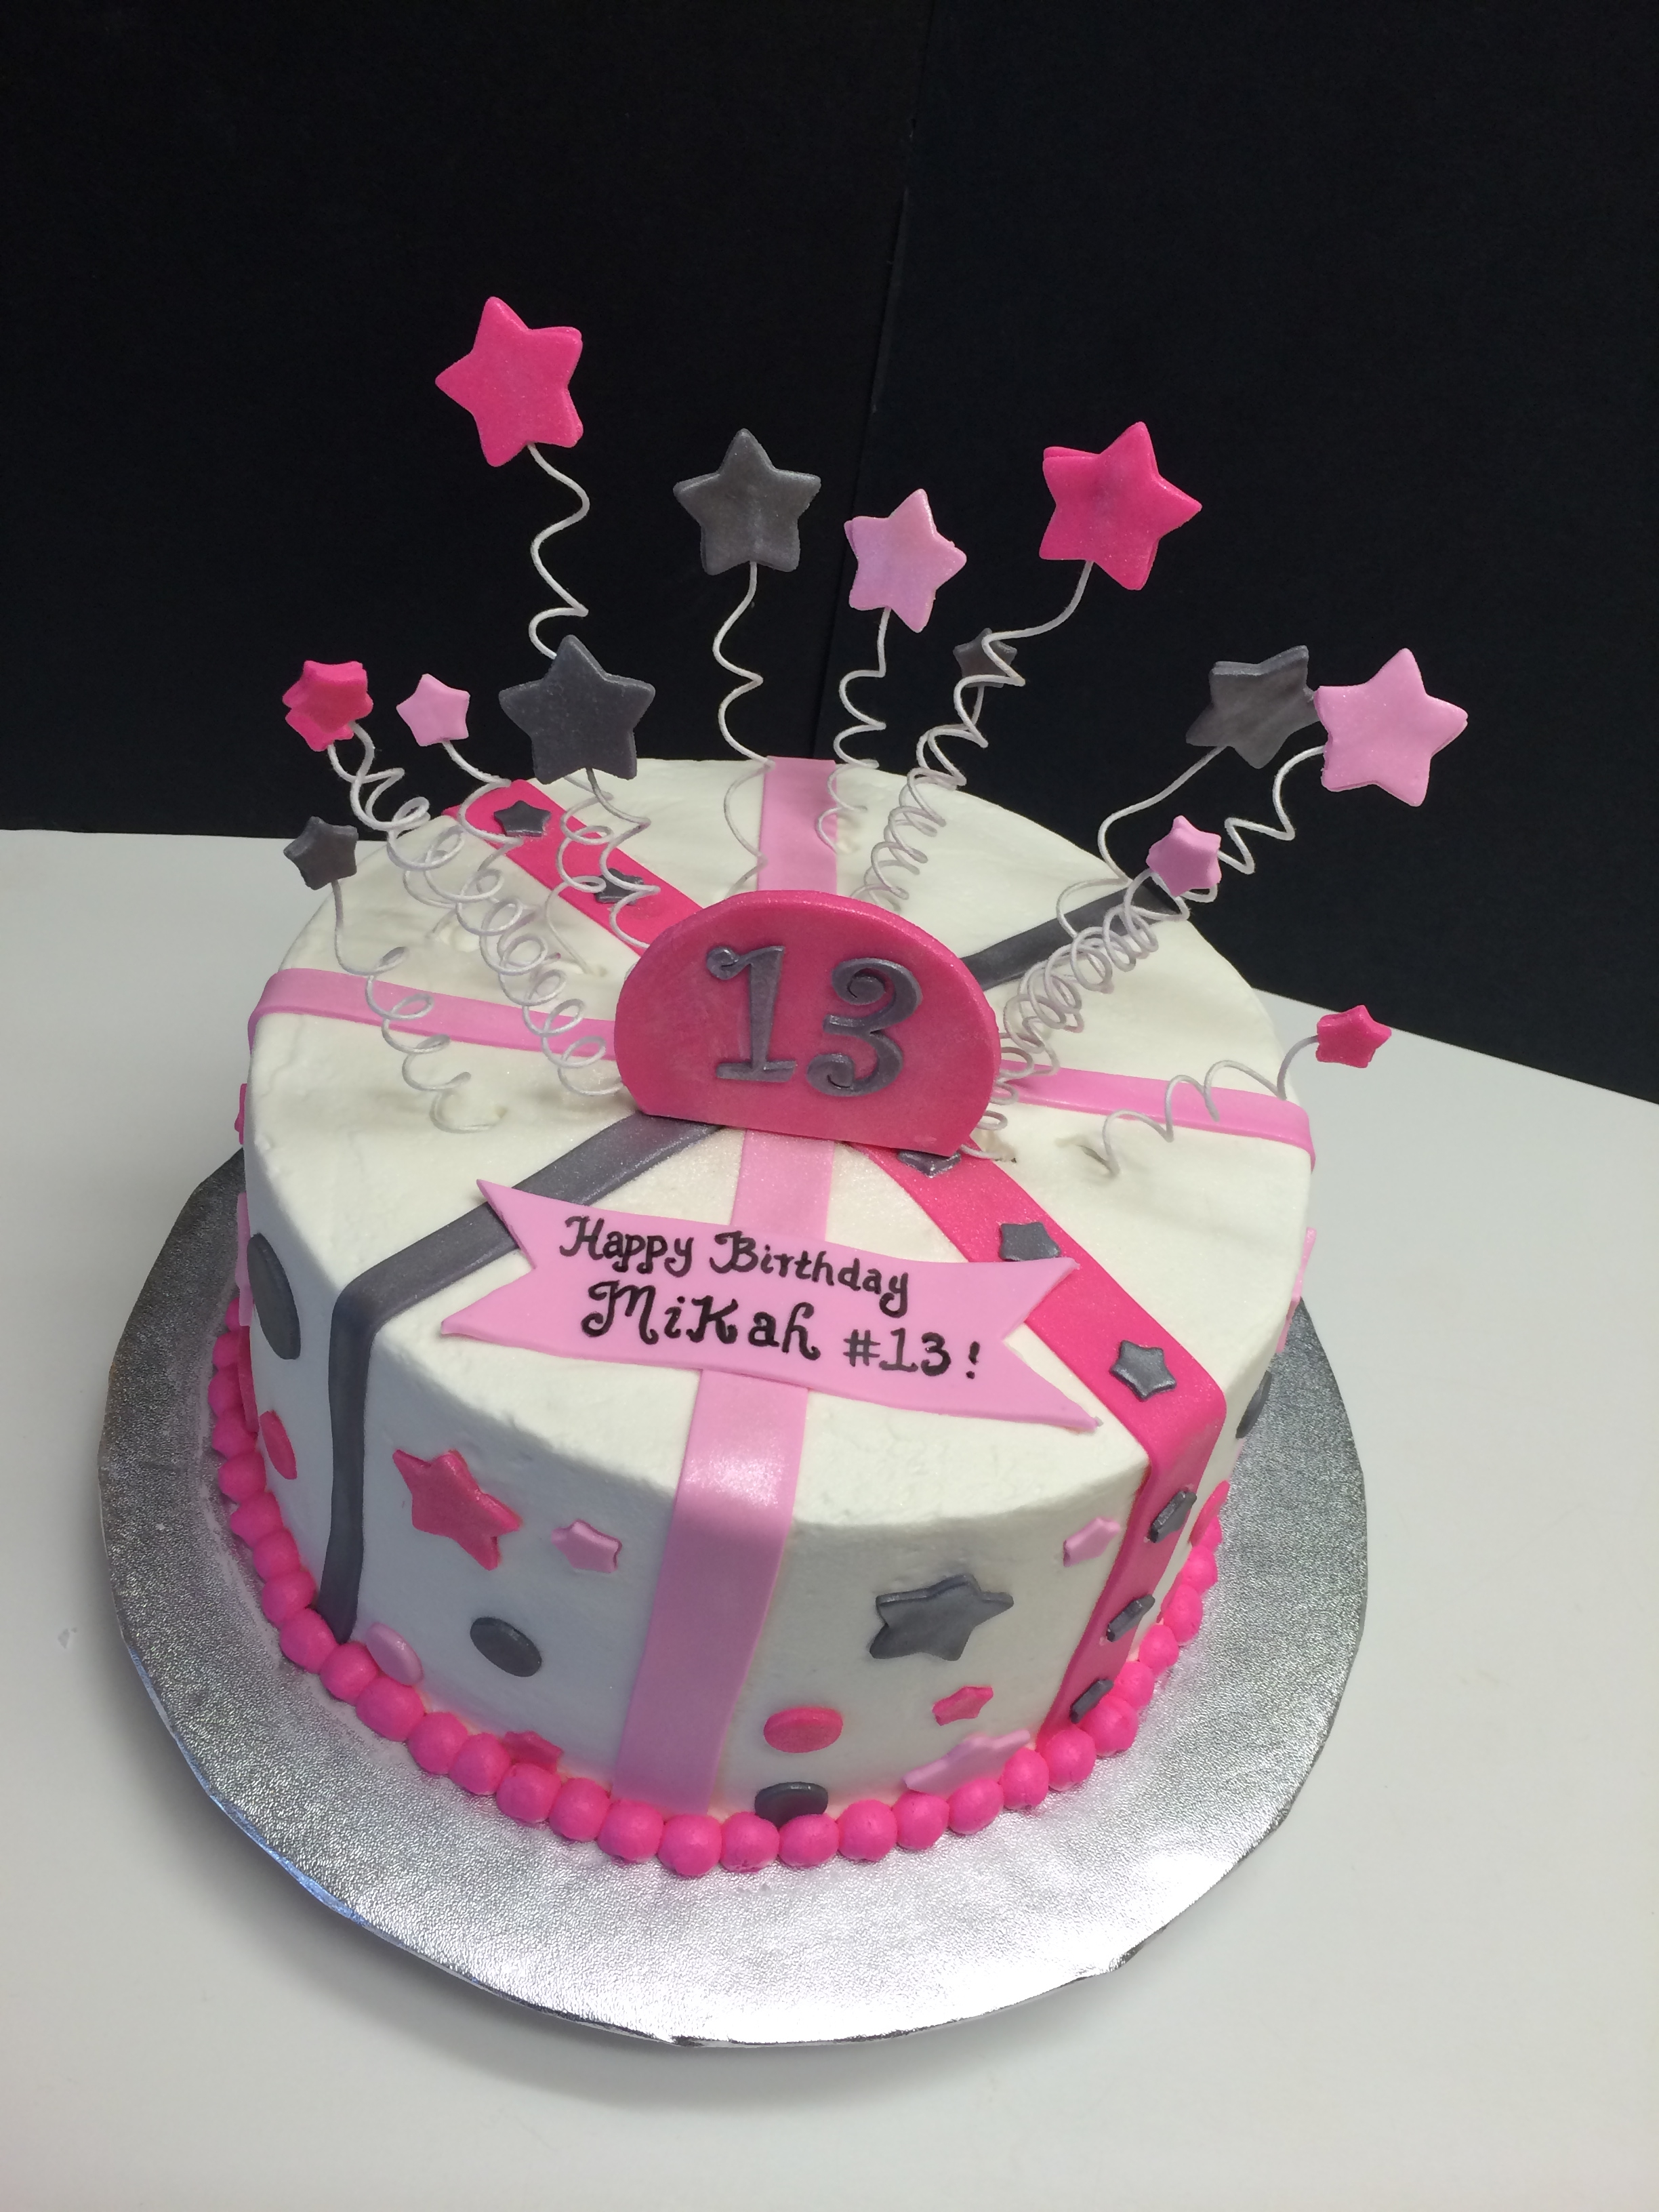 13th Birthday Cake With Stars Stripes And Polka Dots